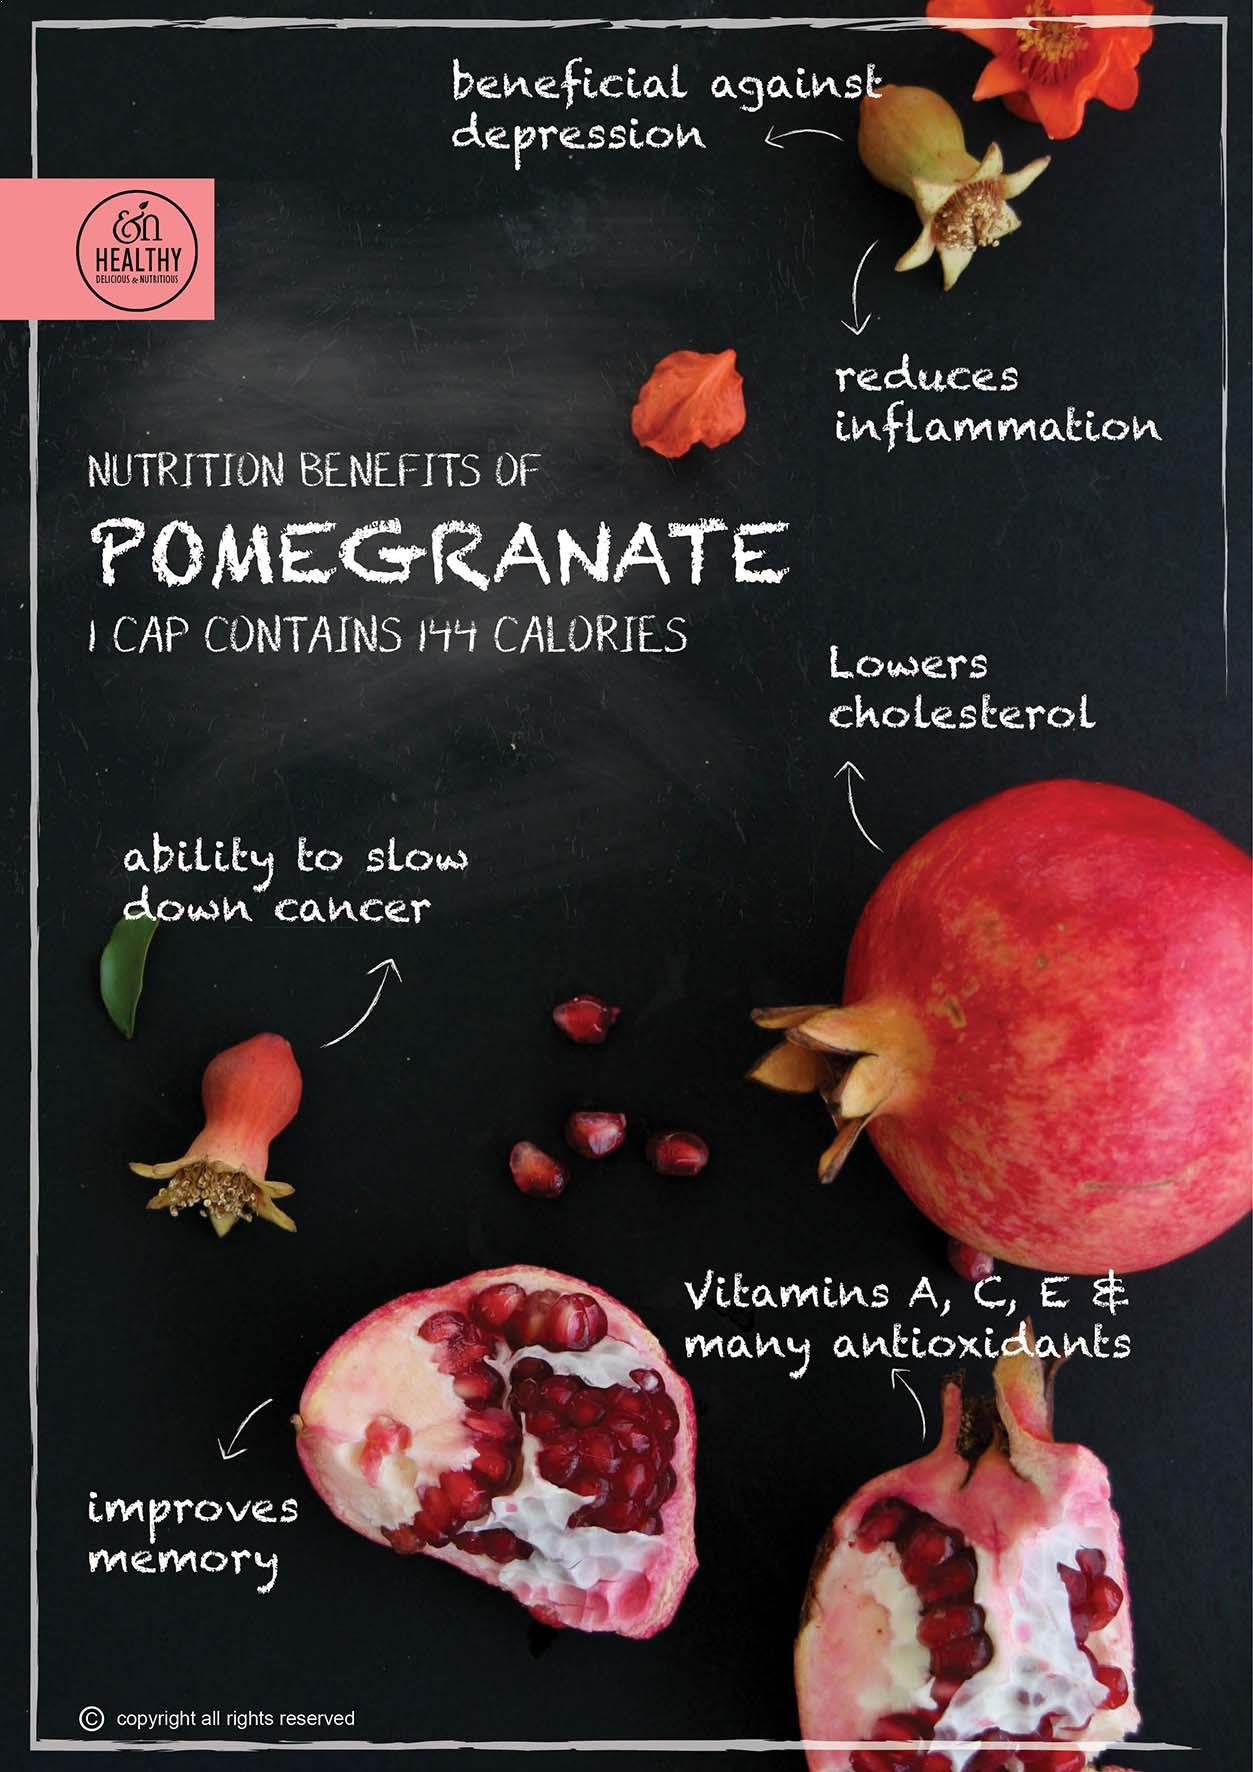 Pomegranate-nutritional-benefits